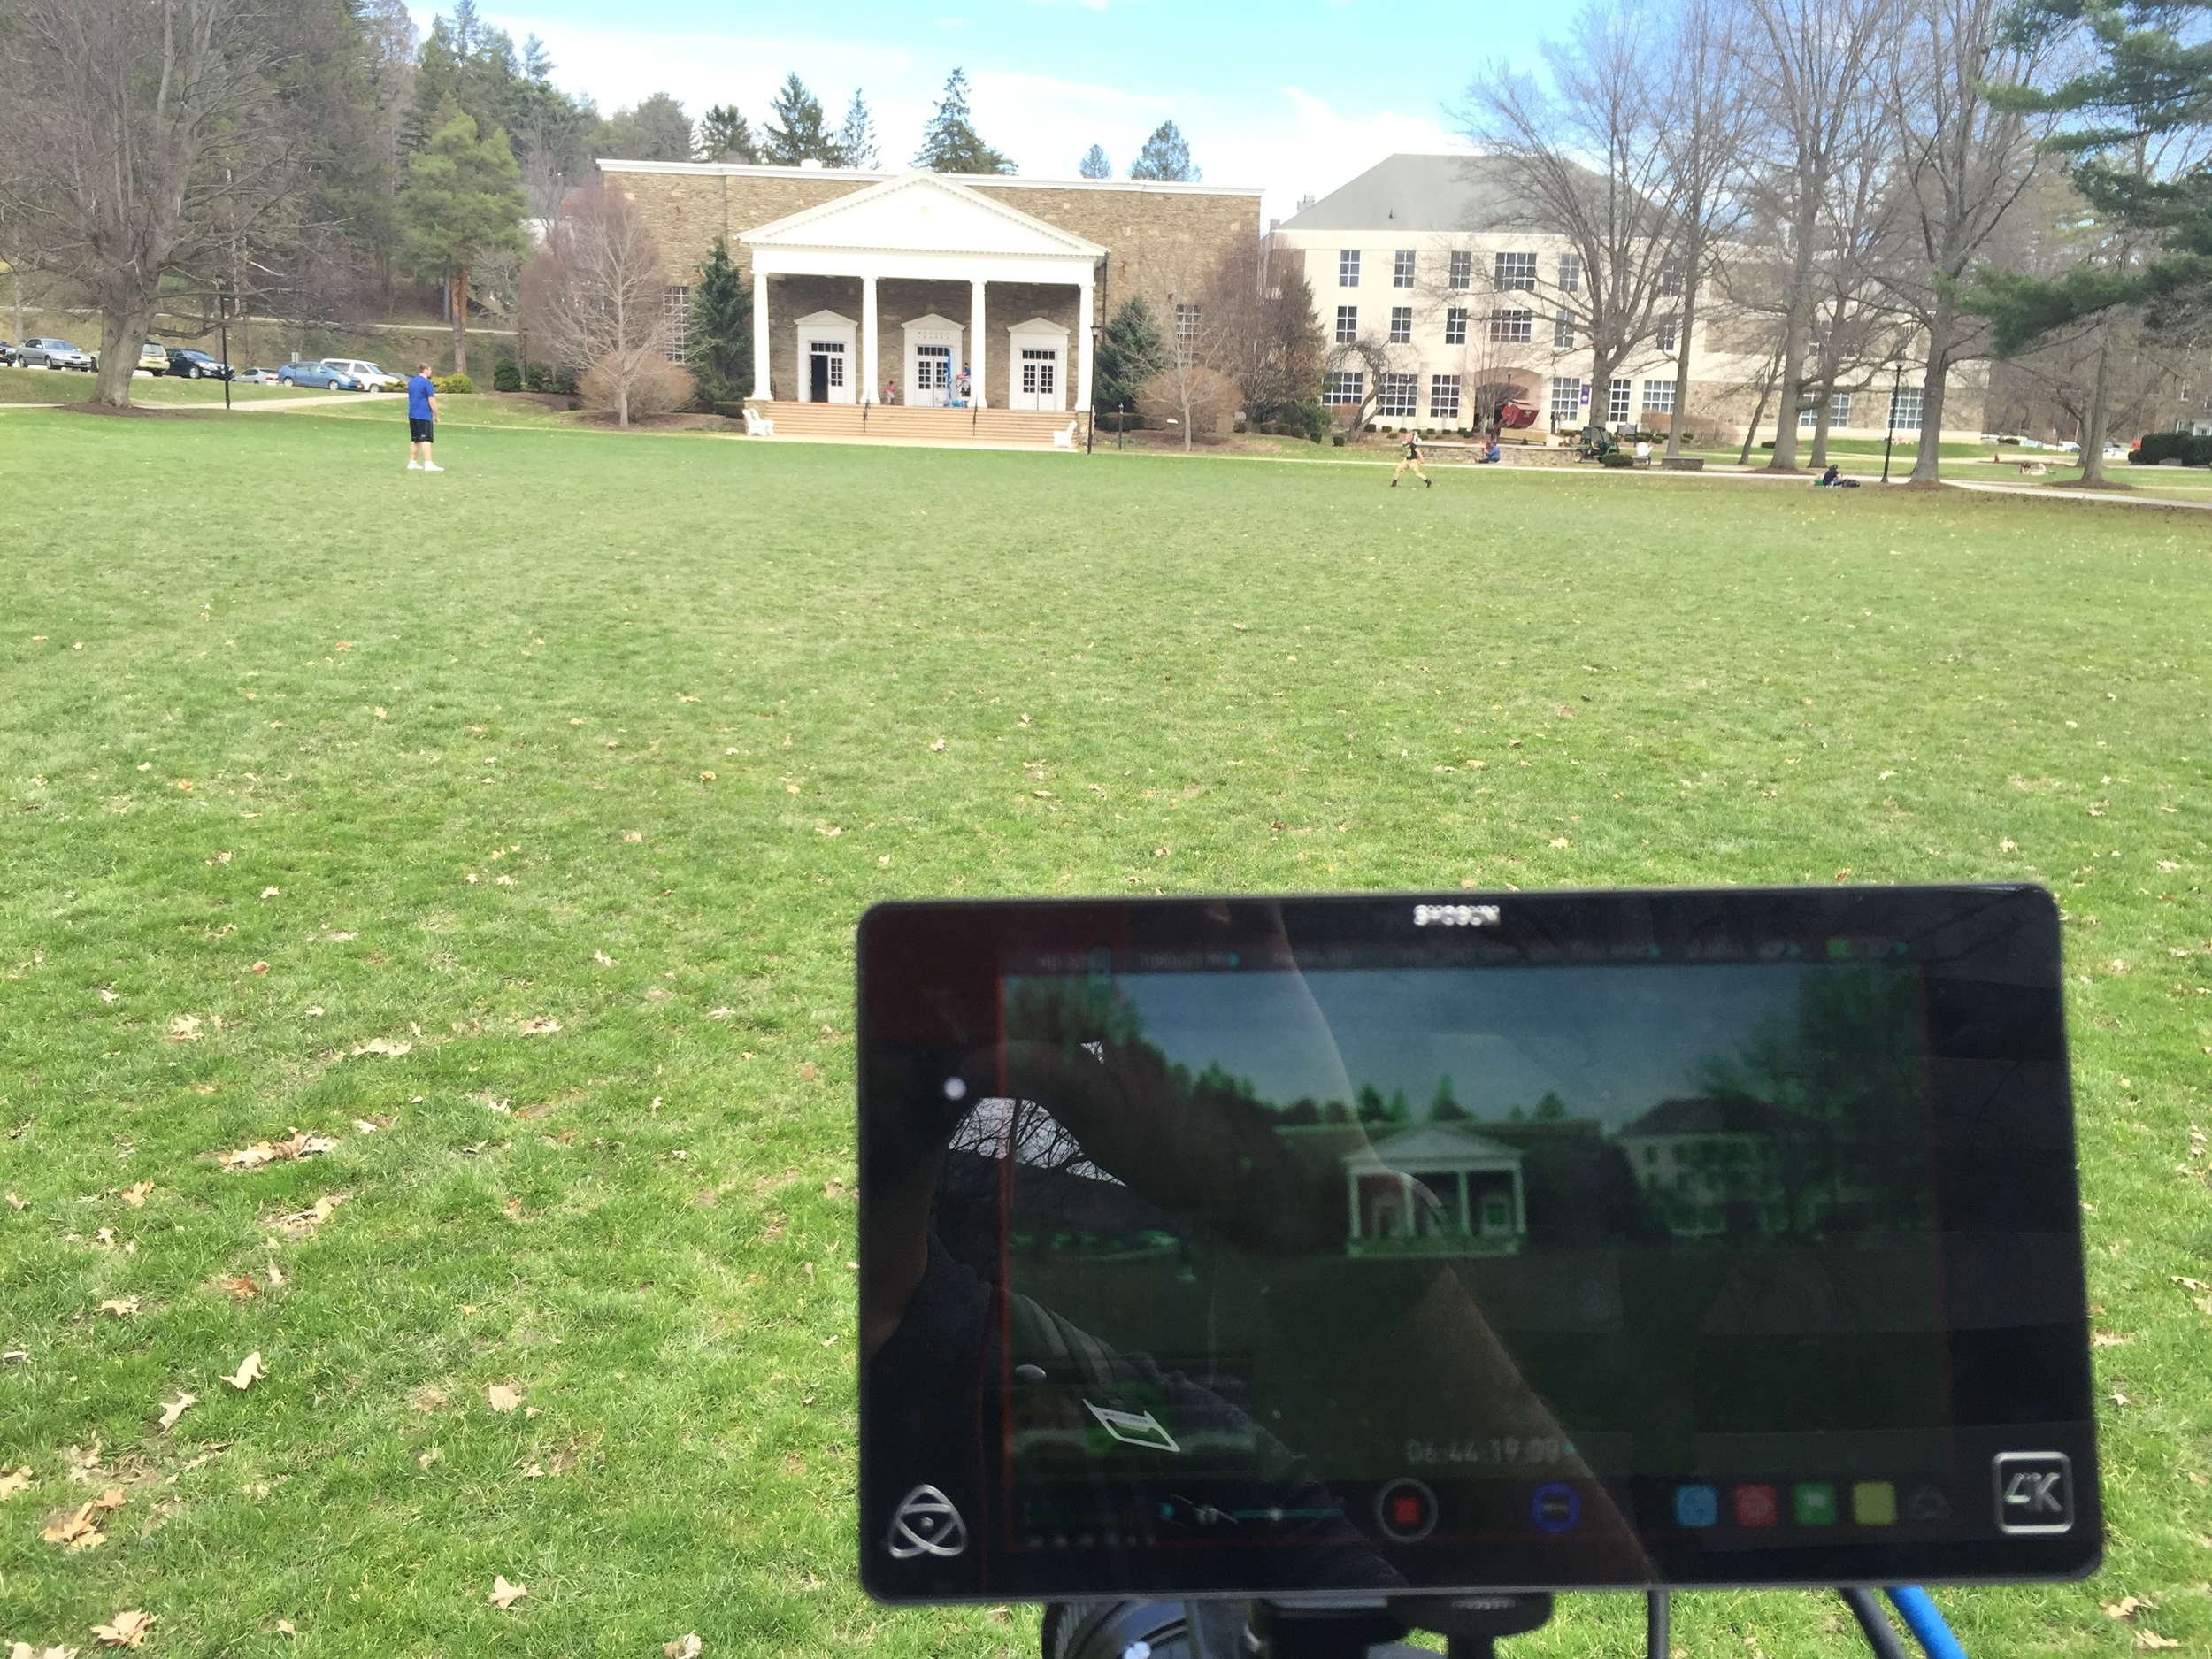 Atomos Shogun recorder in action at Houghton College, NY.